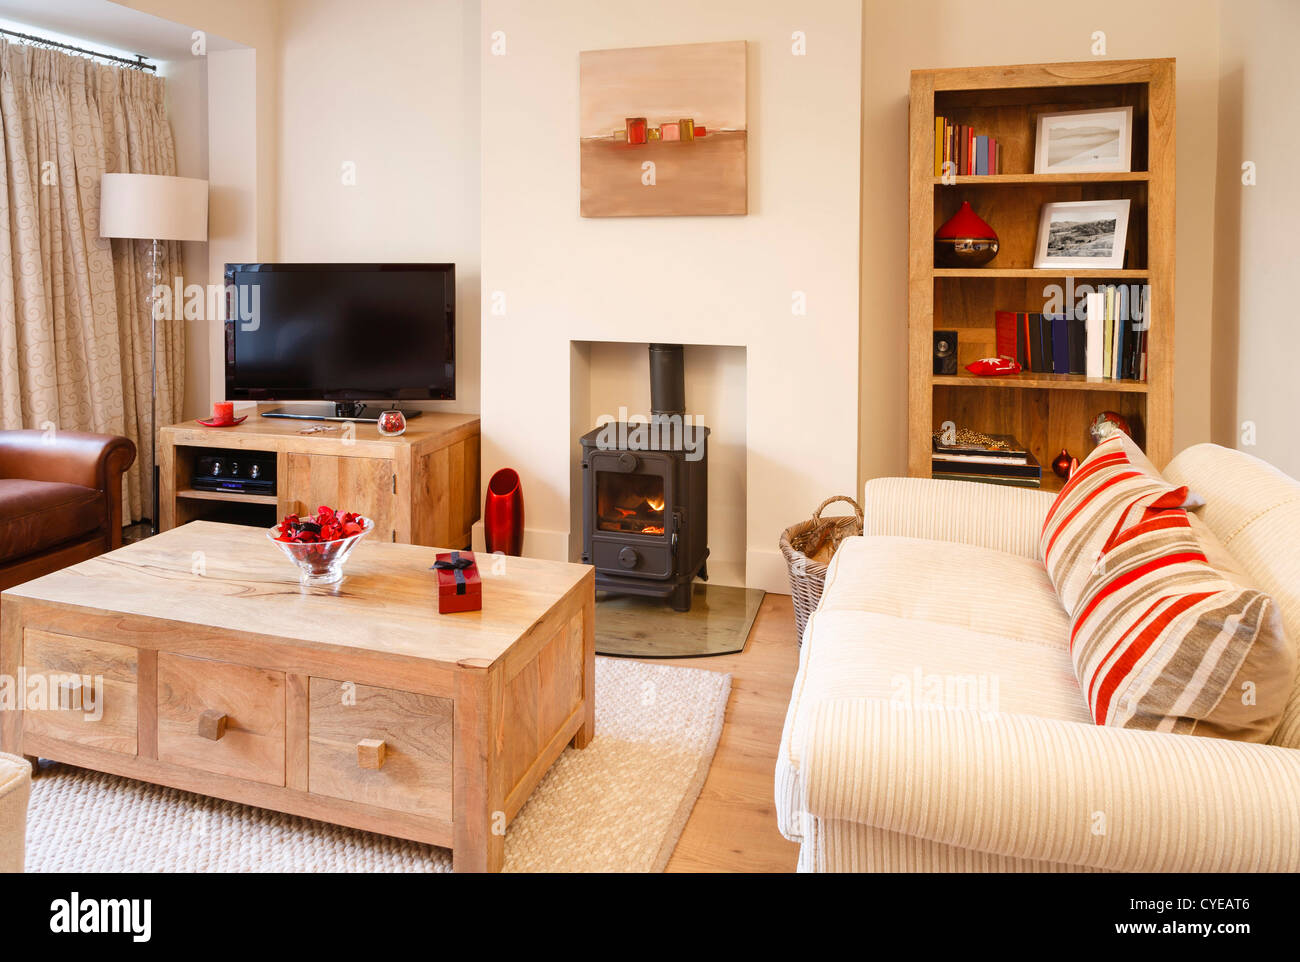 Contemporary Living Room With Neutral Colors, Wood Burner And Wooden Floor.  Photographers Own Artwork On Wall And Bookcase.